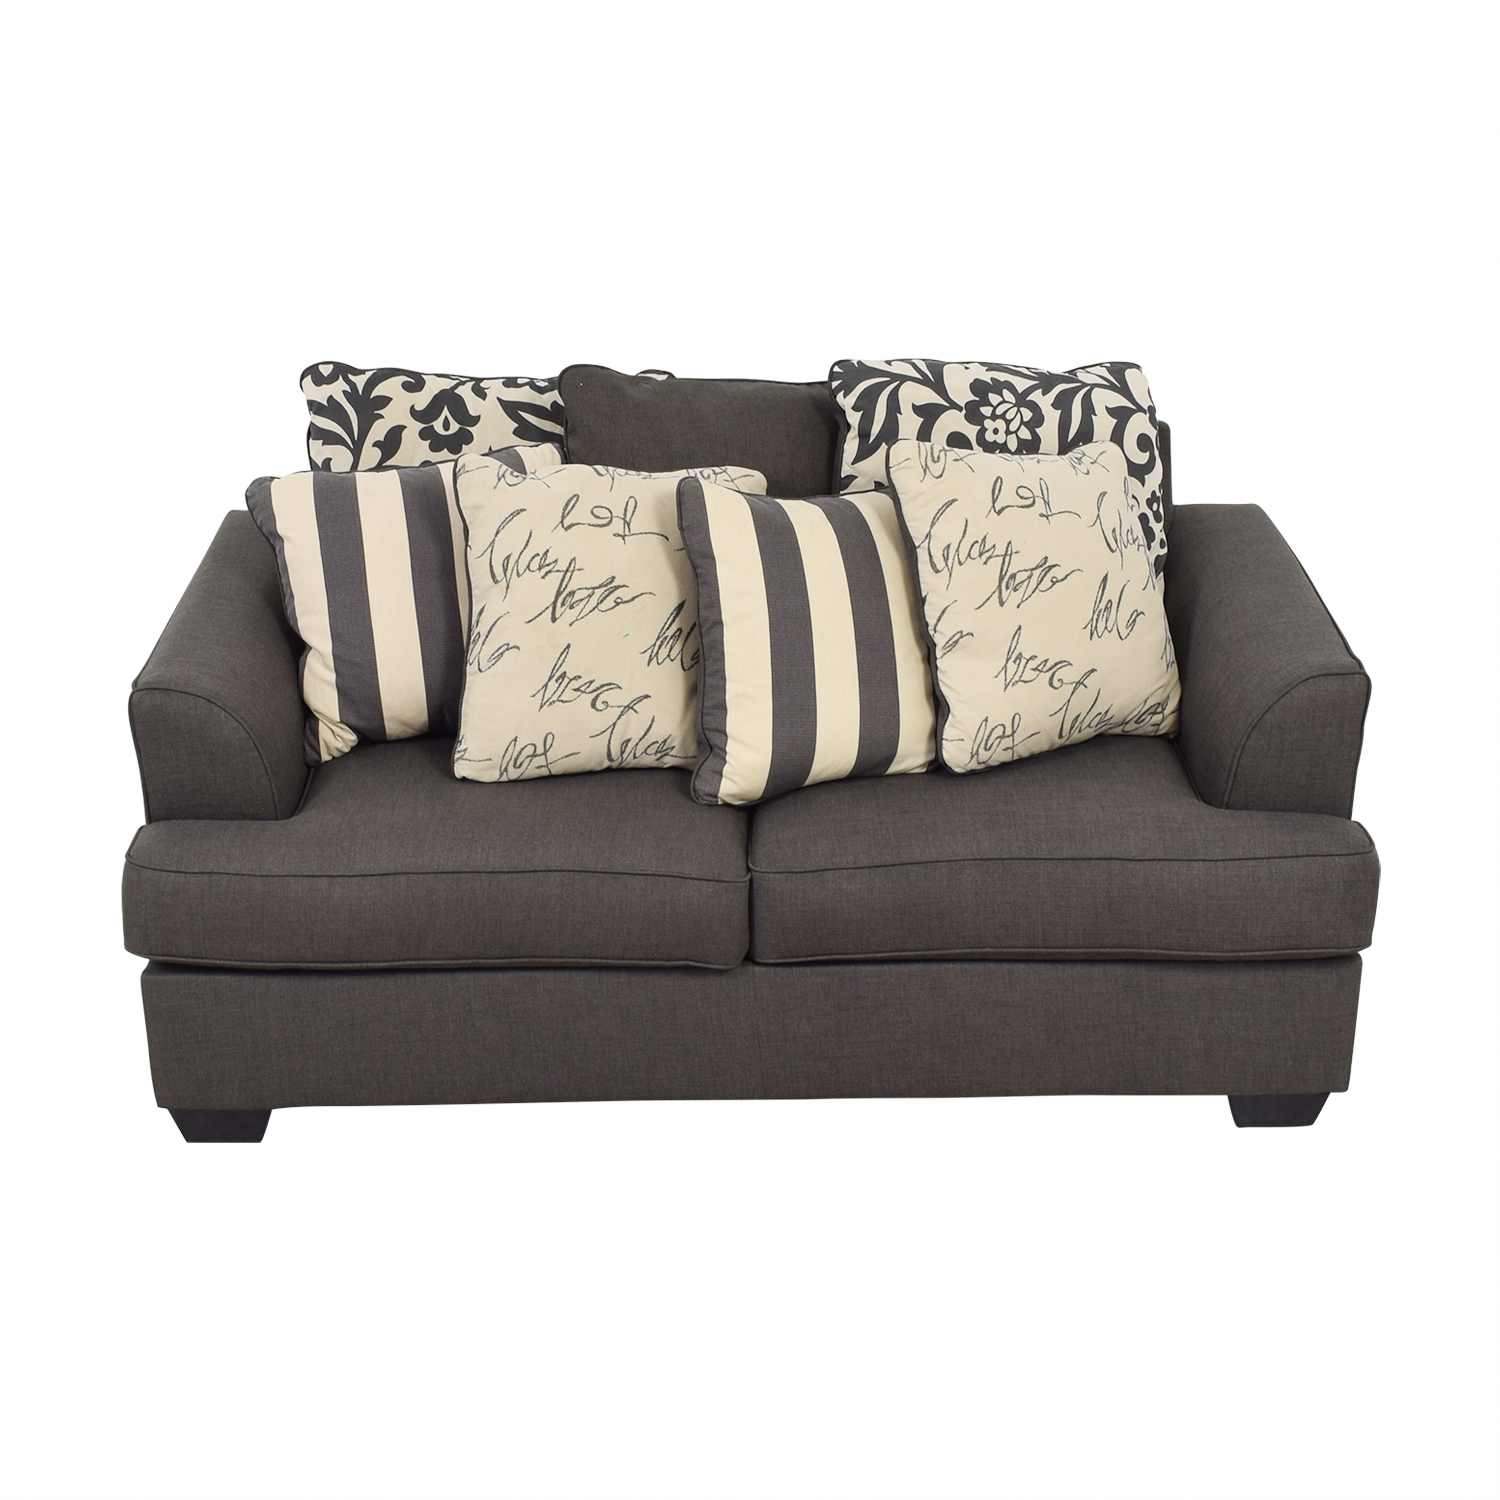 Merveilleux ... Ashley Furniture Ashley Furniture Levon Loveseat Loveseats ...